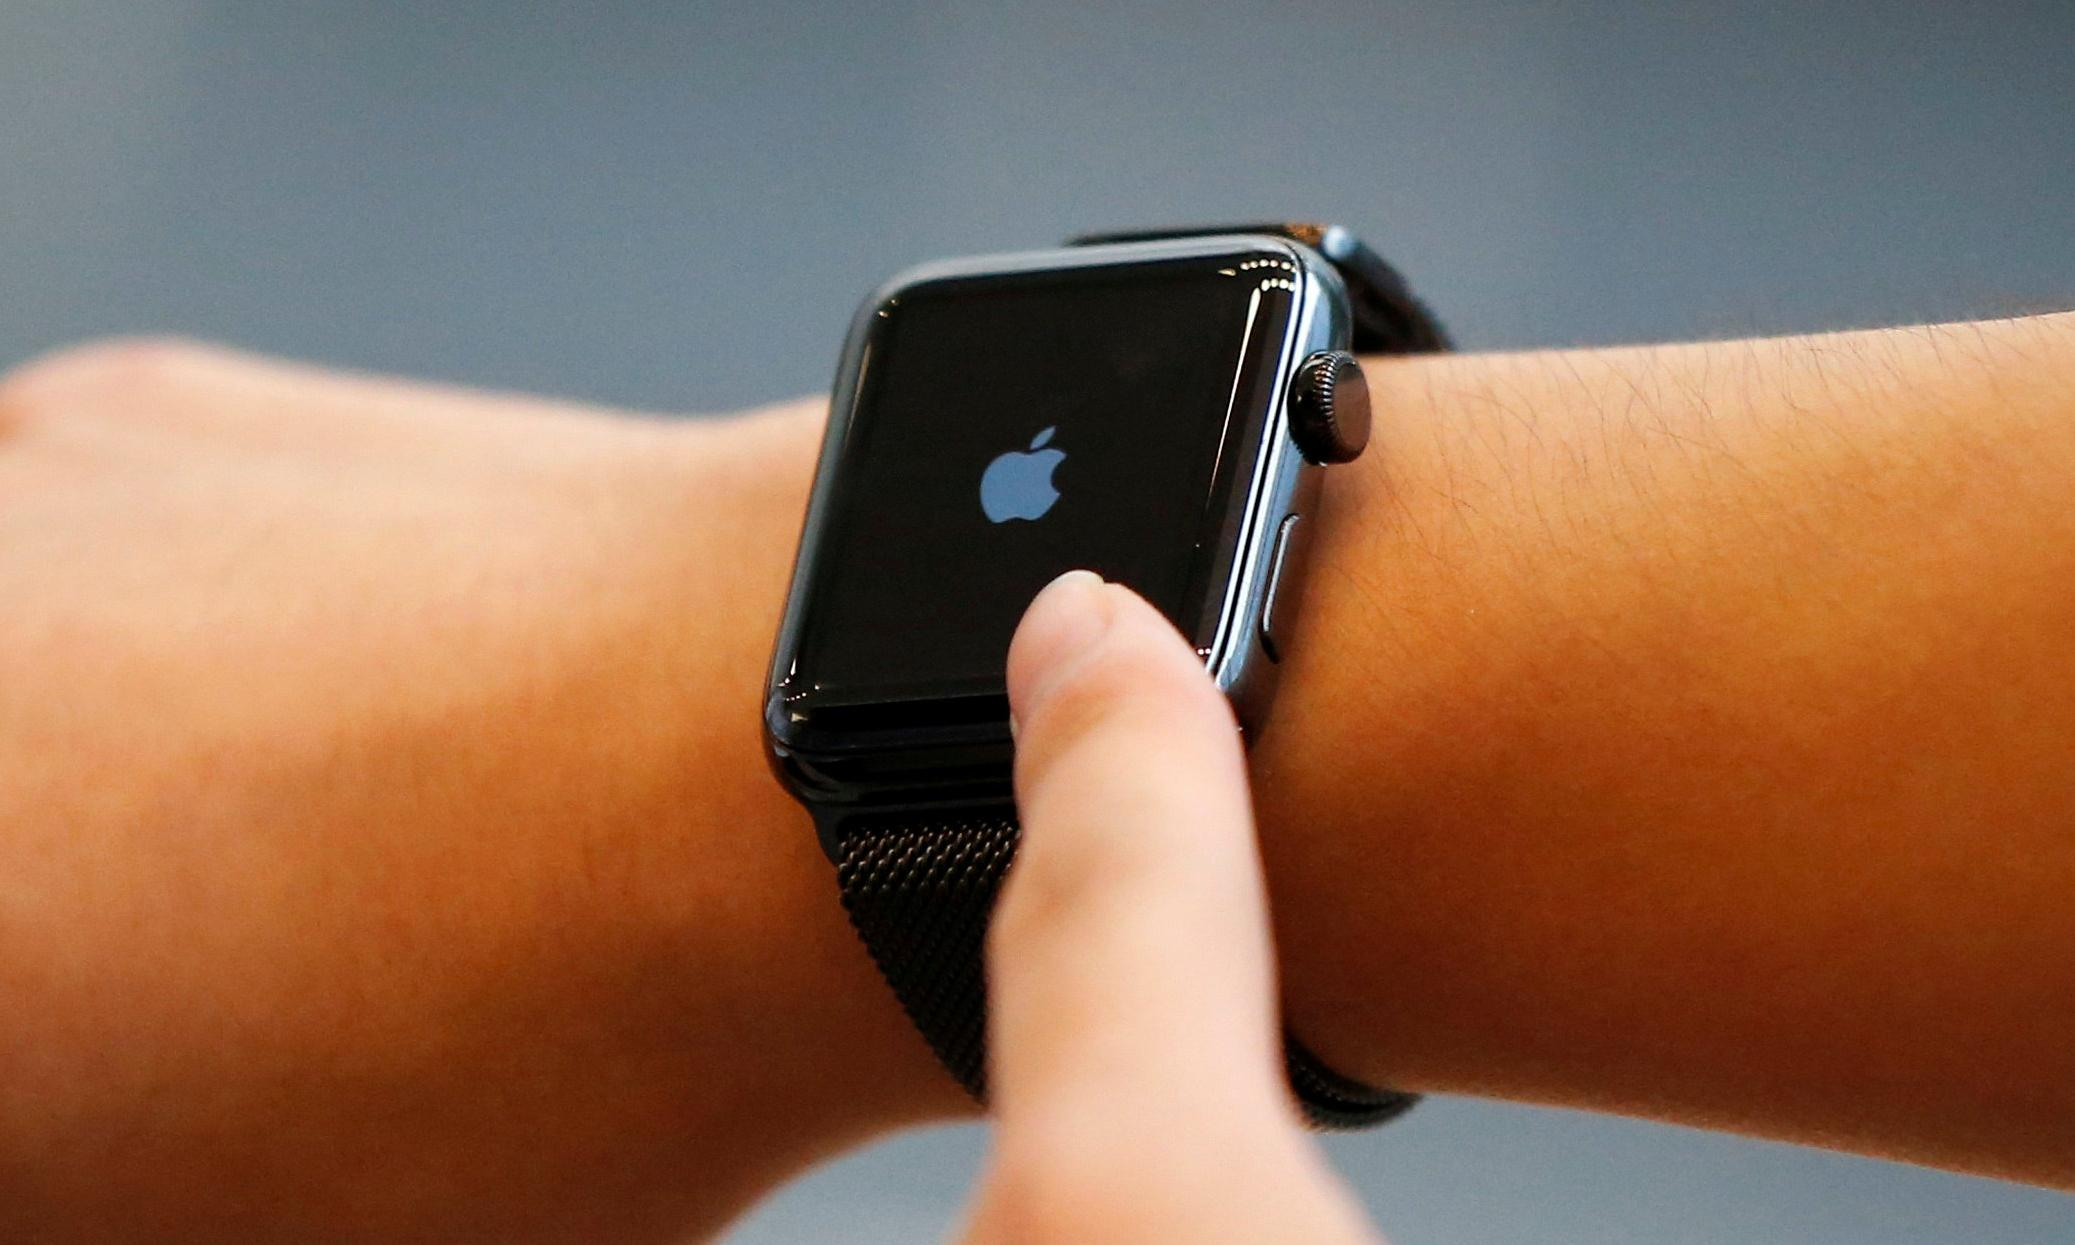 Major study suggests Apple Watch can detect irregular heartbeat